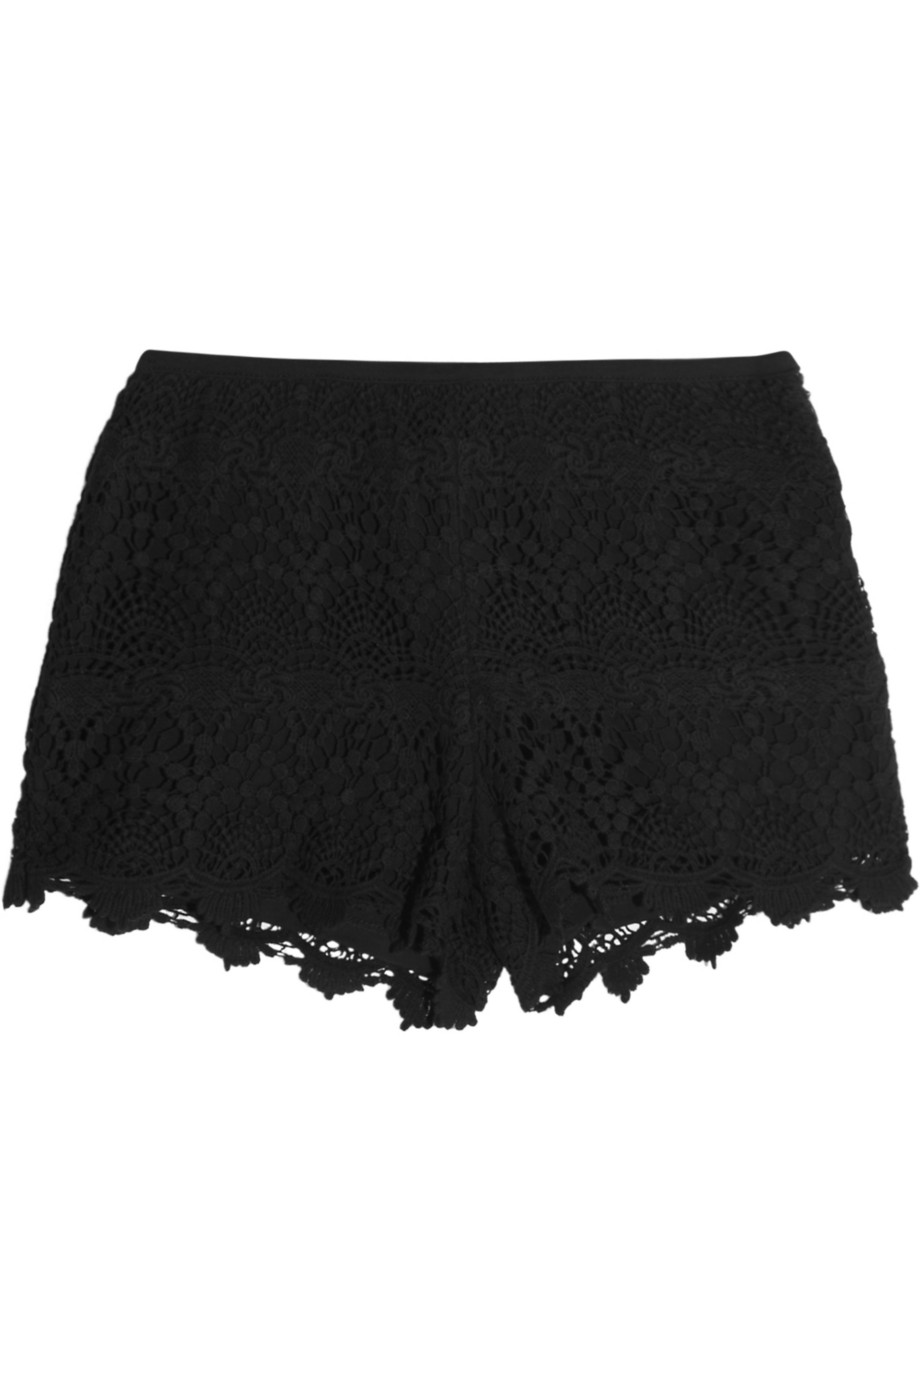 Kendall crocheted lace shorts | Tart | 50% off | THE OUTNET